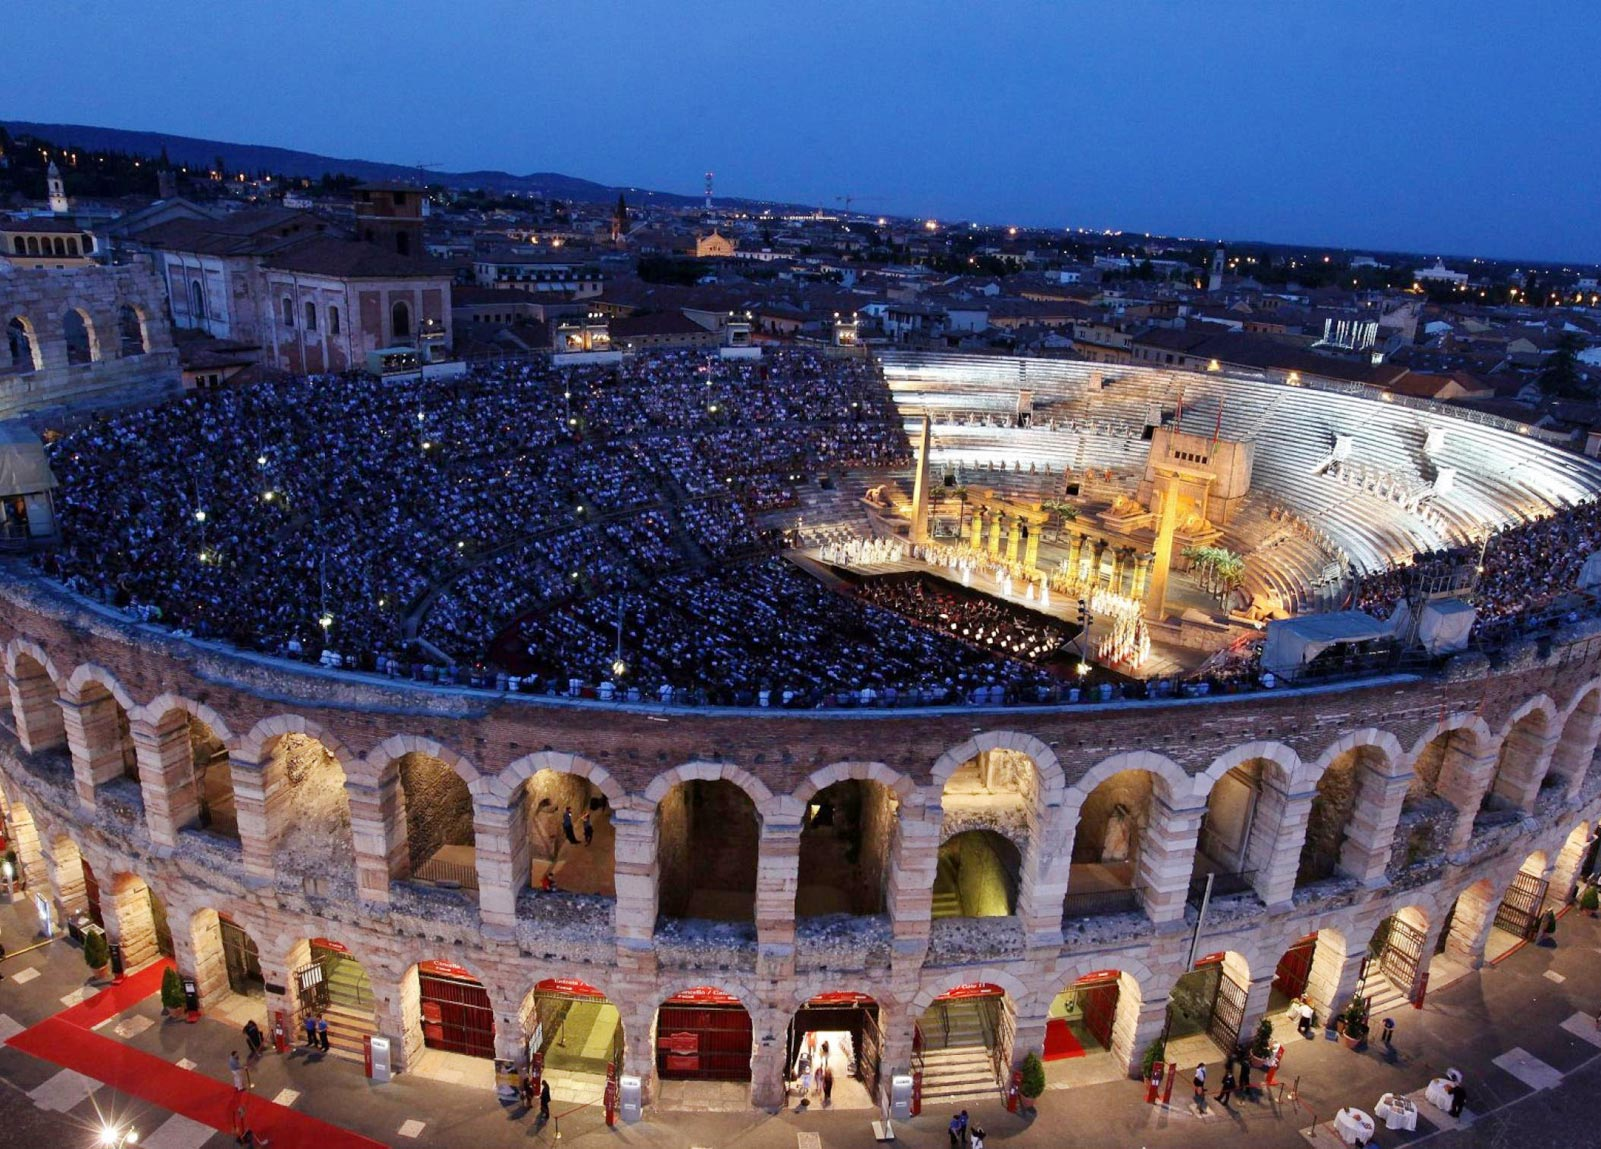 Cheap dress rentals - Verona Opera 2017 Verona Opera Dress Code Verona Opera Seating